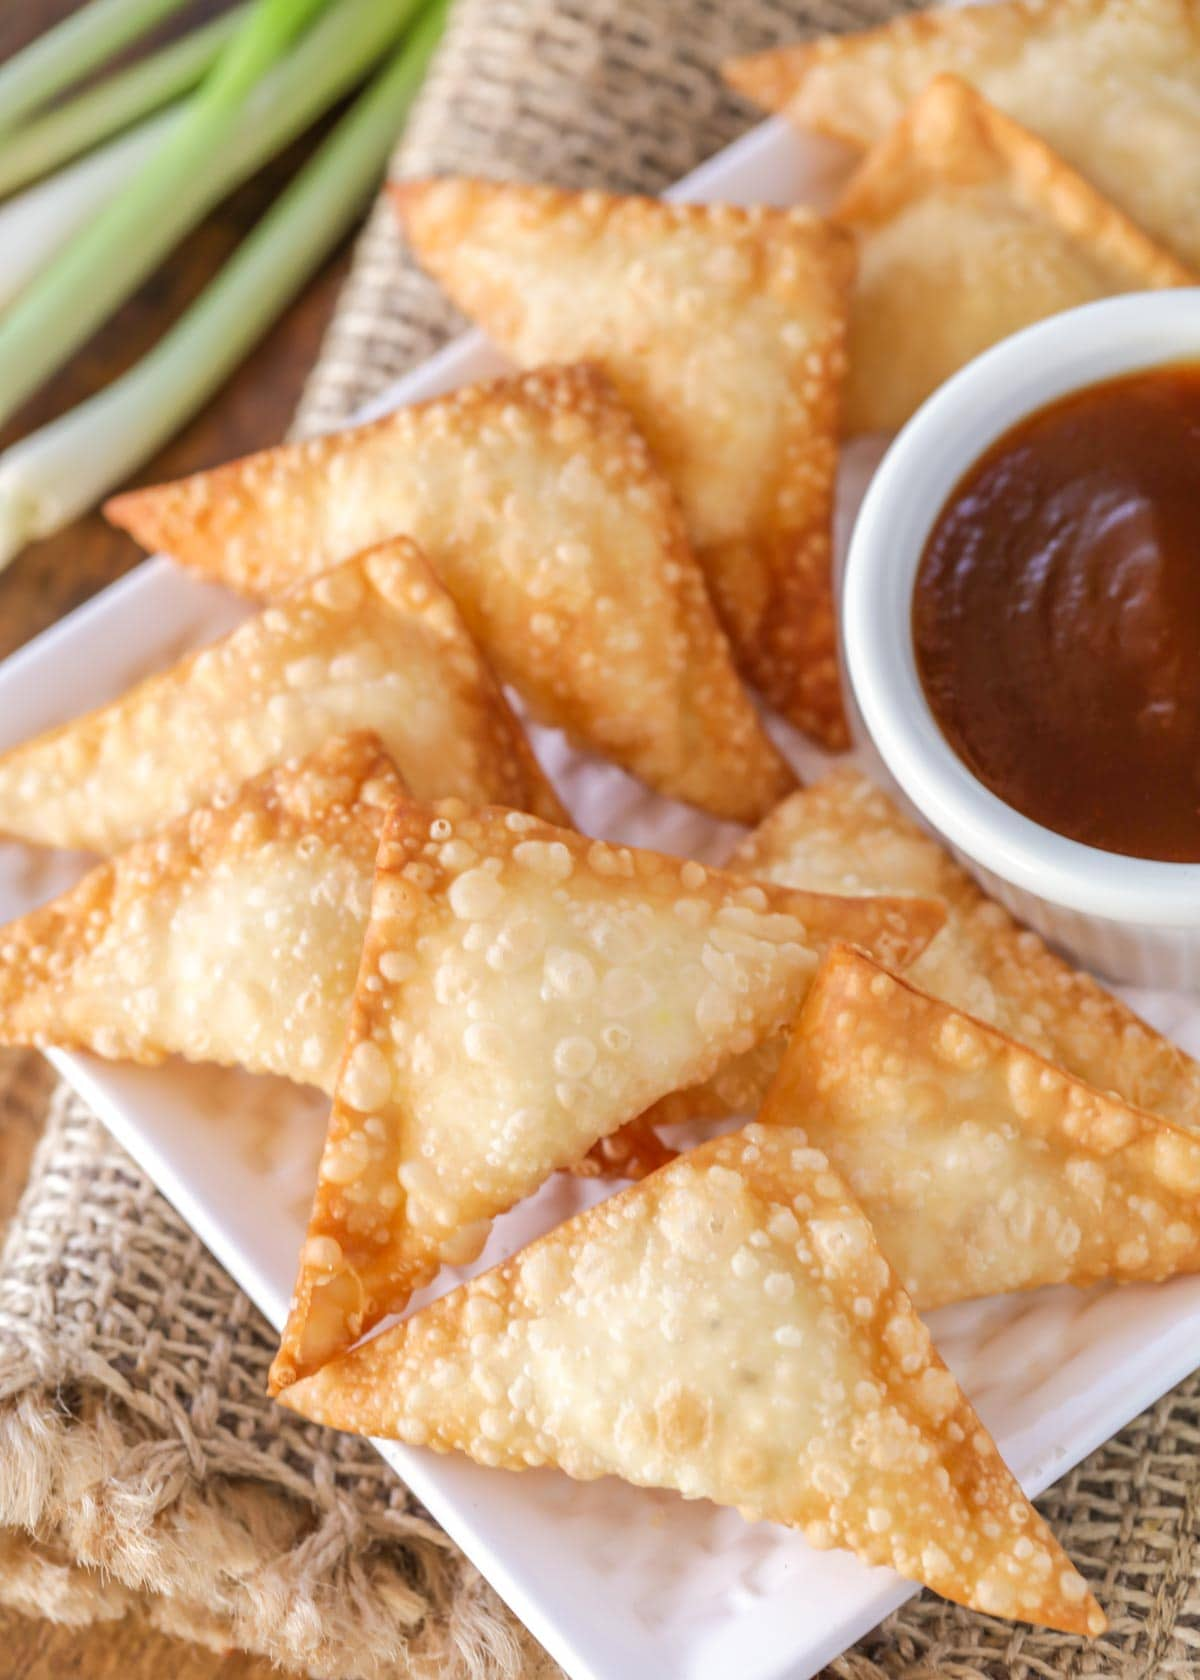 Cream cheese wontons recipe fried, on a white plate